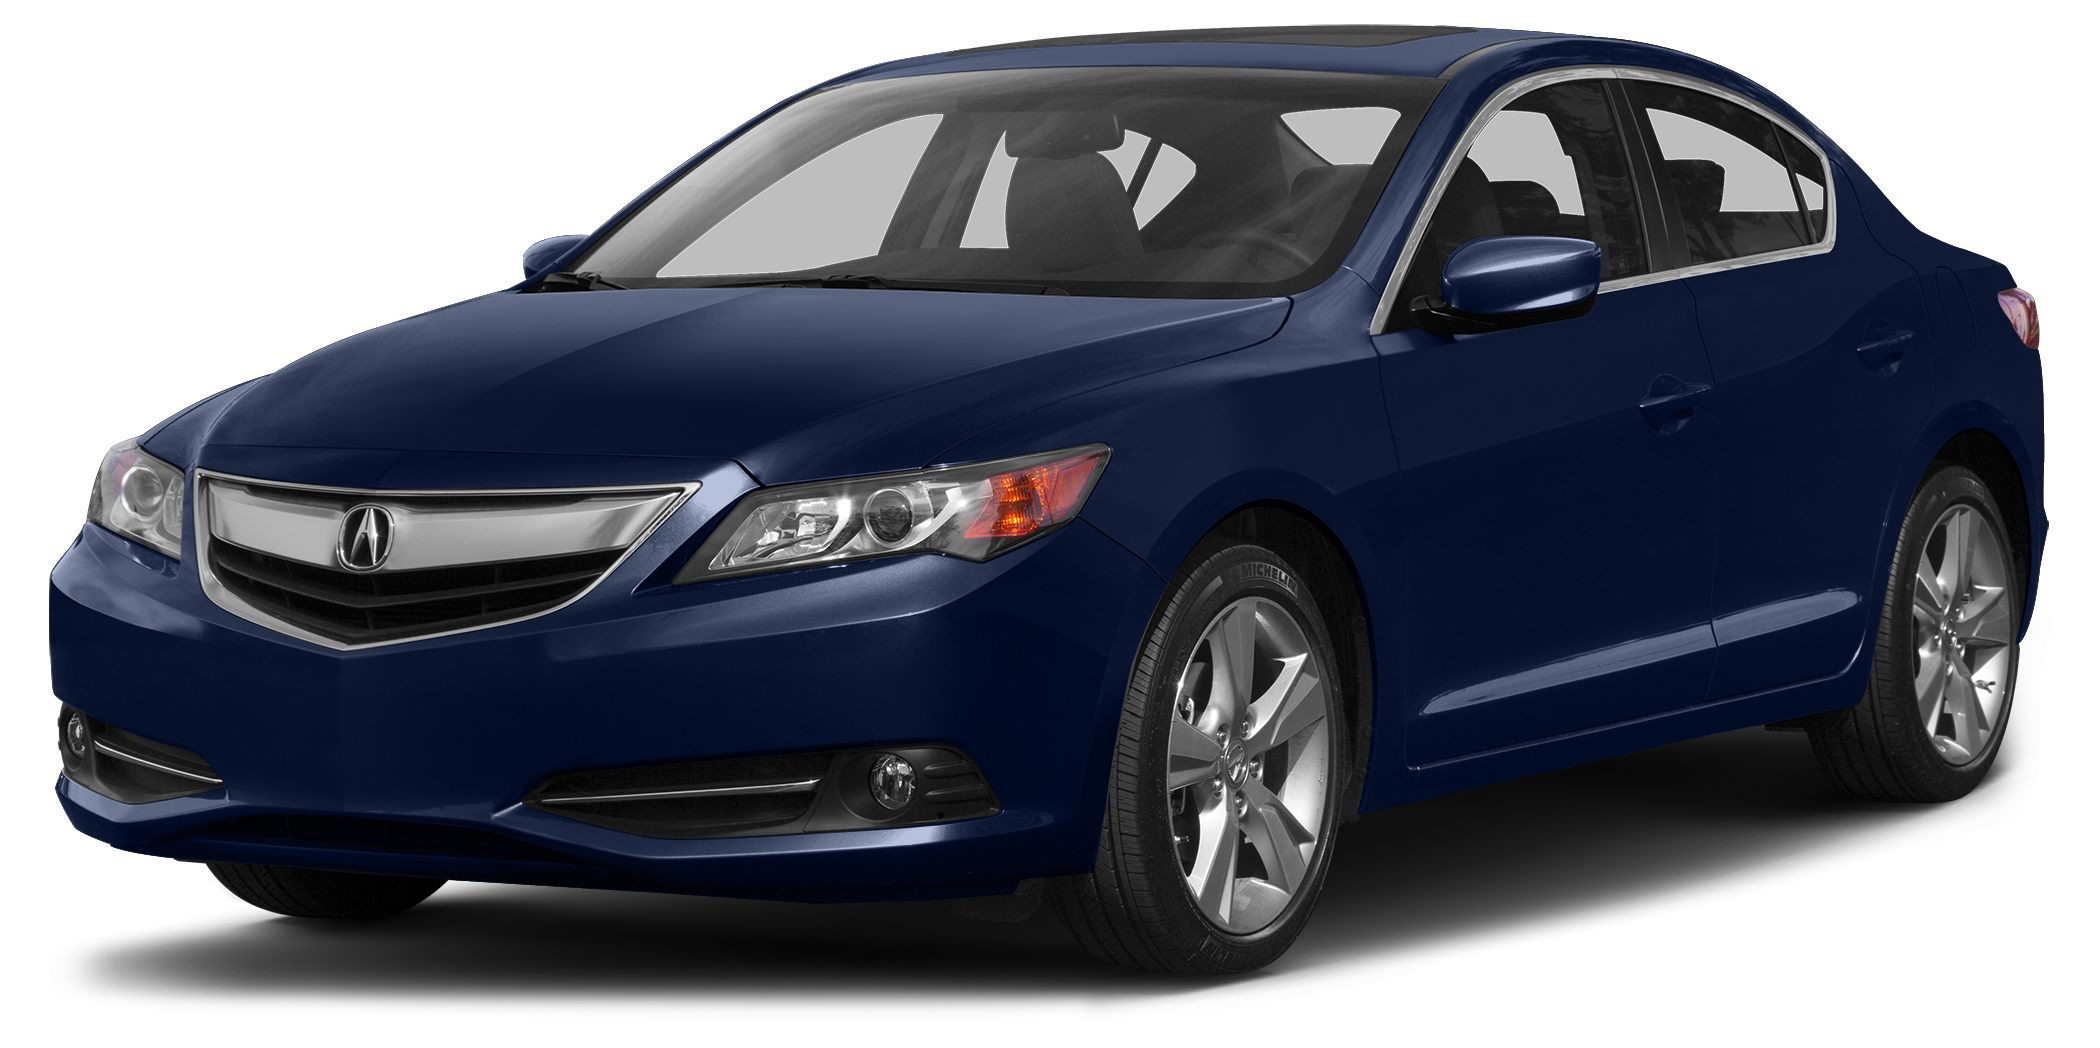 2013 Acura ILX 24 Premium WHEN IT COMES TO EXCELLENCE IN USED CAR SALES YOU KNOW YOURE AT STAR